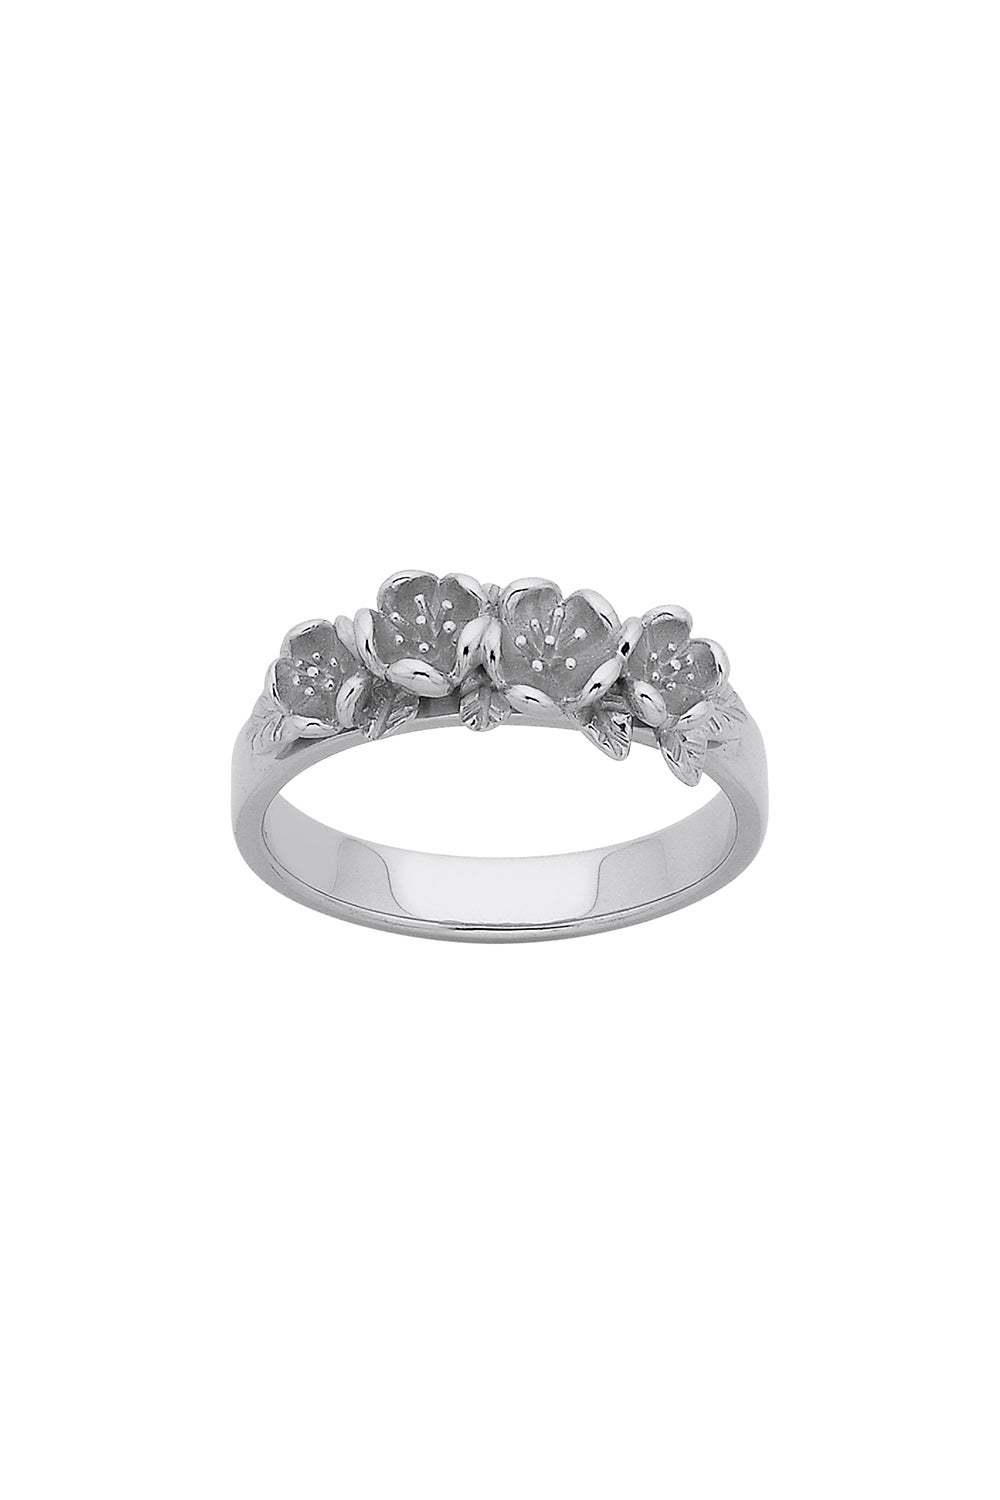 Wreath Ring Silver